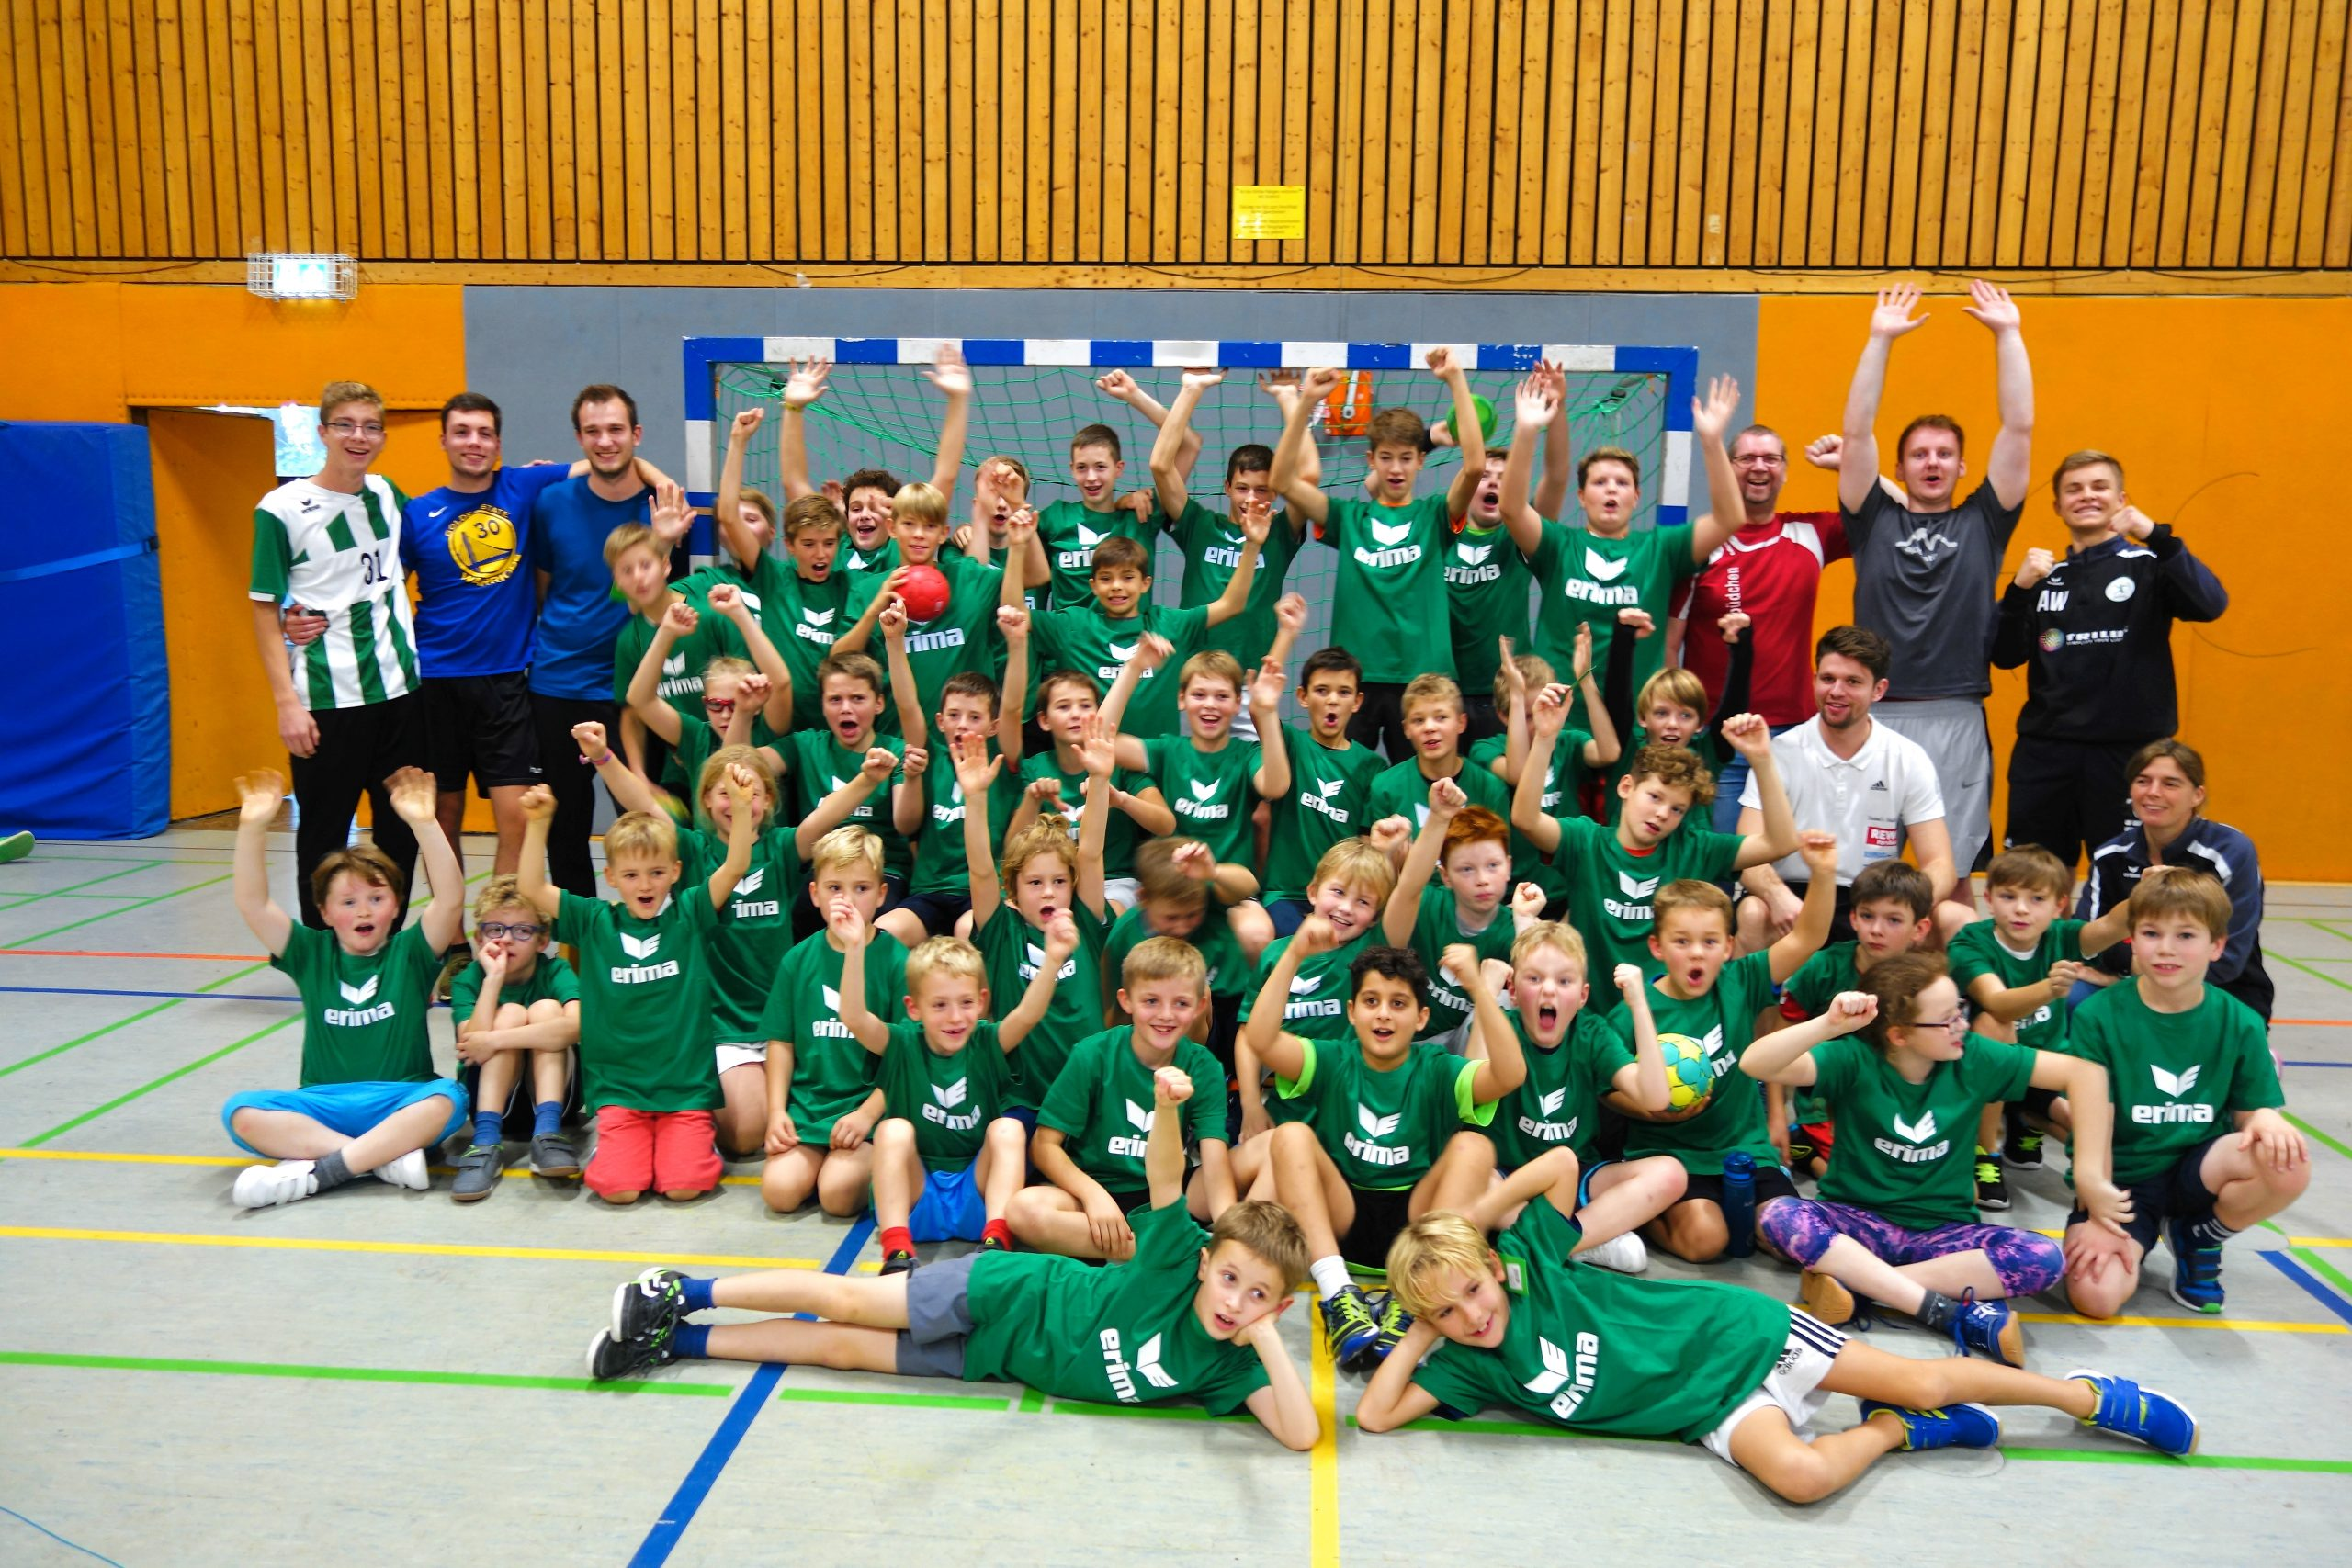 You are currently viewing X. Rösrather Herbstferien-Handballcamp